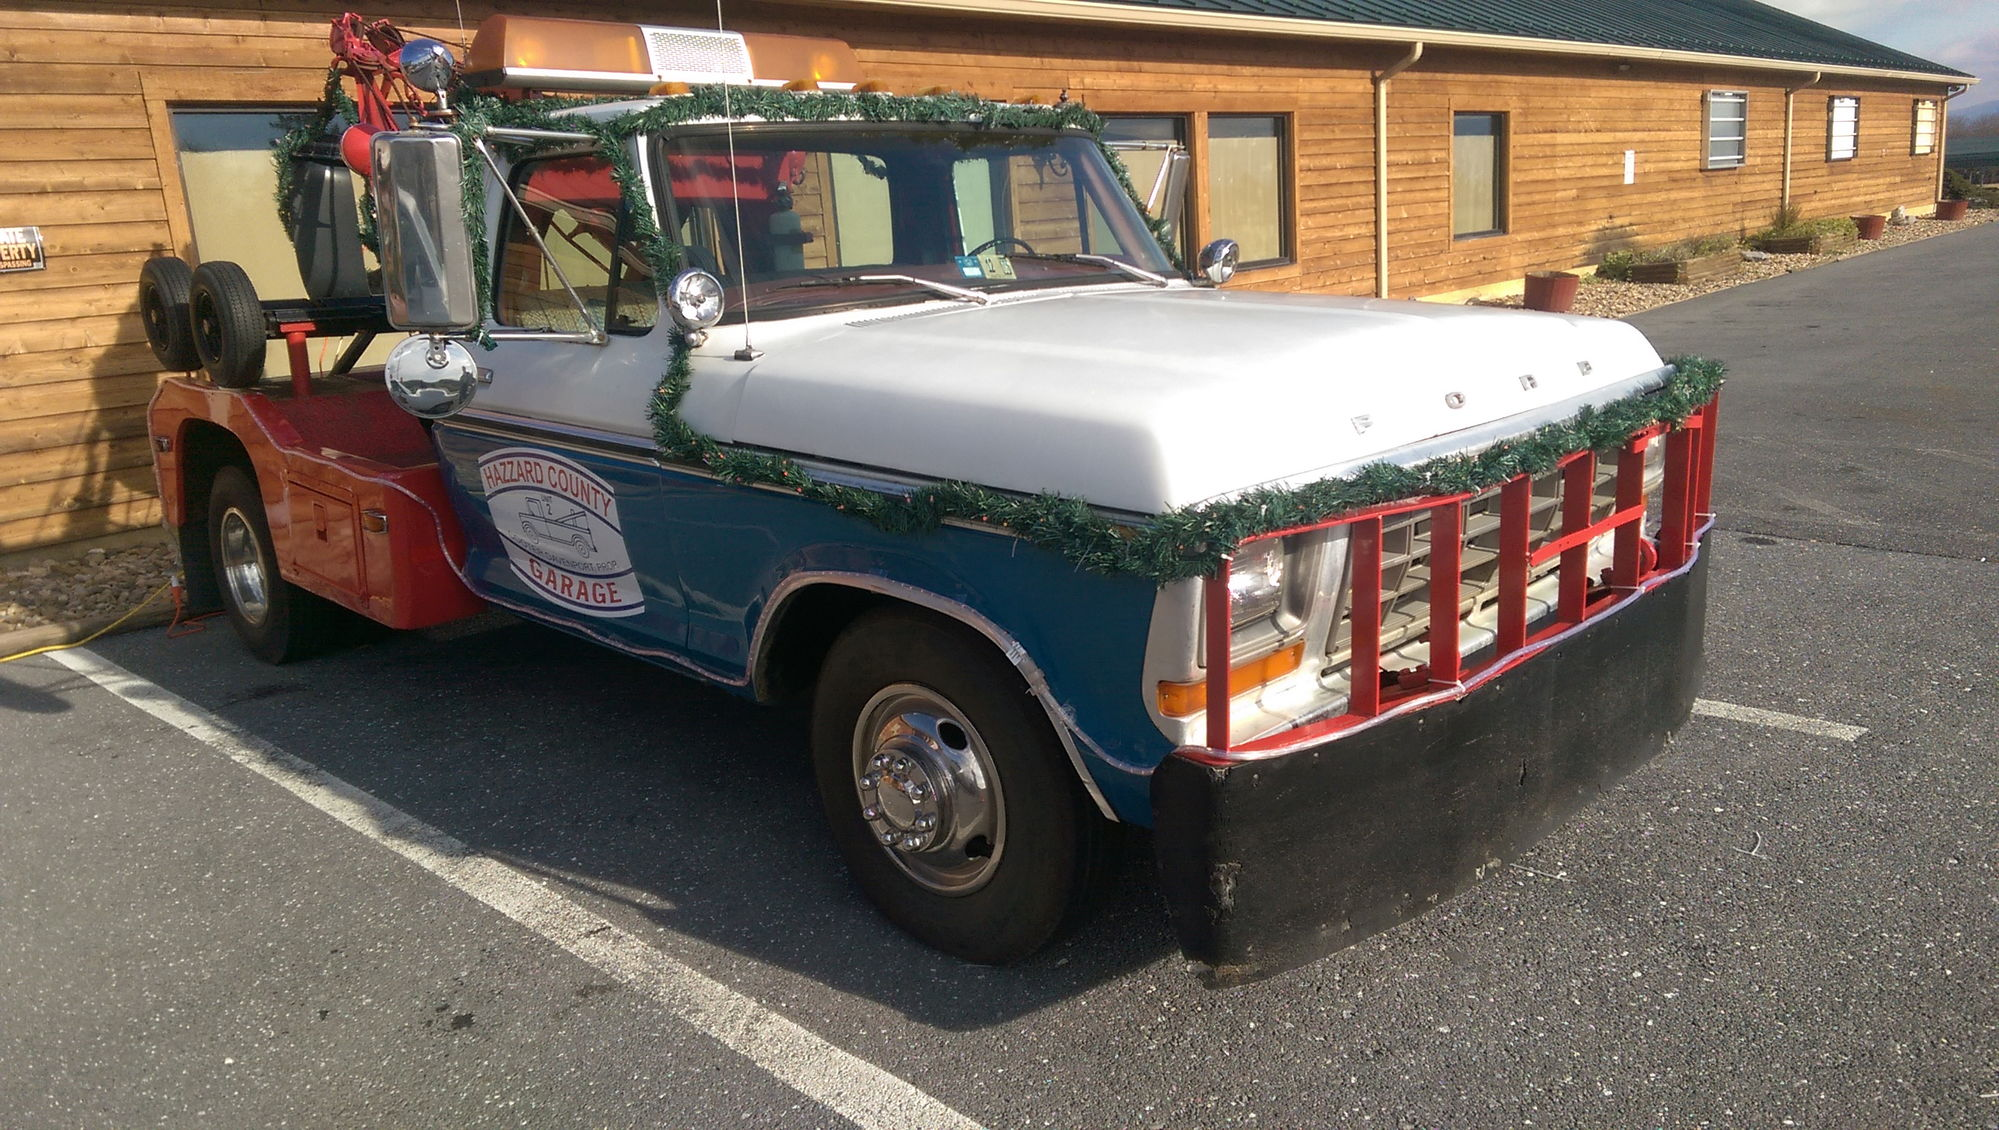 Tow Truck Ottawa >> Cooter's 78 tow truck - Ford Truck Enthusiasts Forums